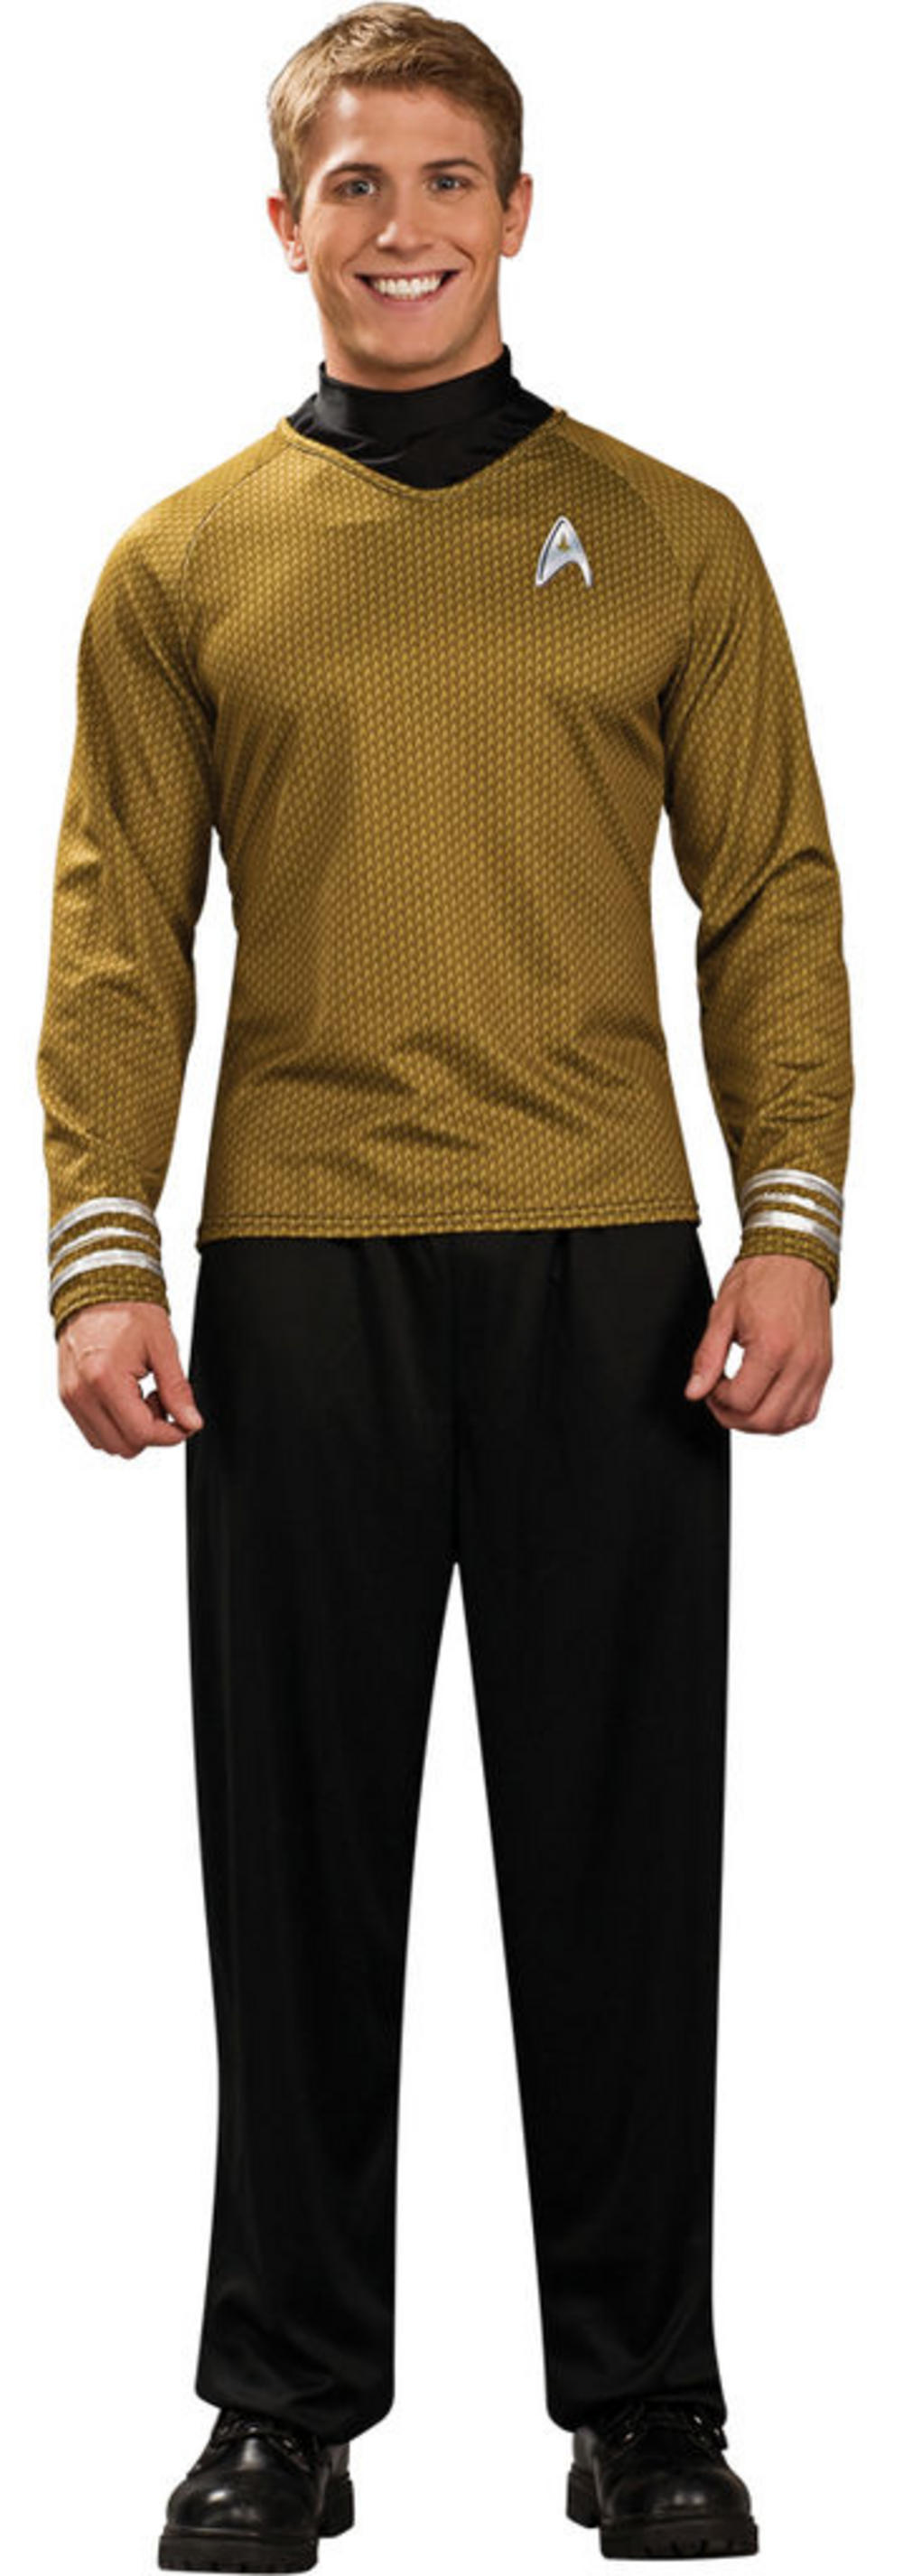 Adults' Gold Star Trek Shirt